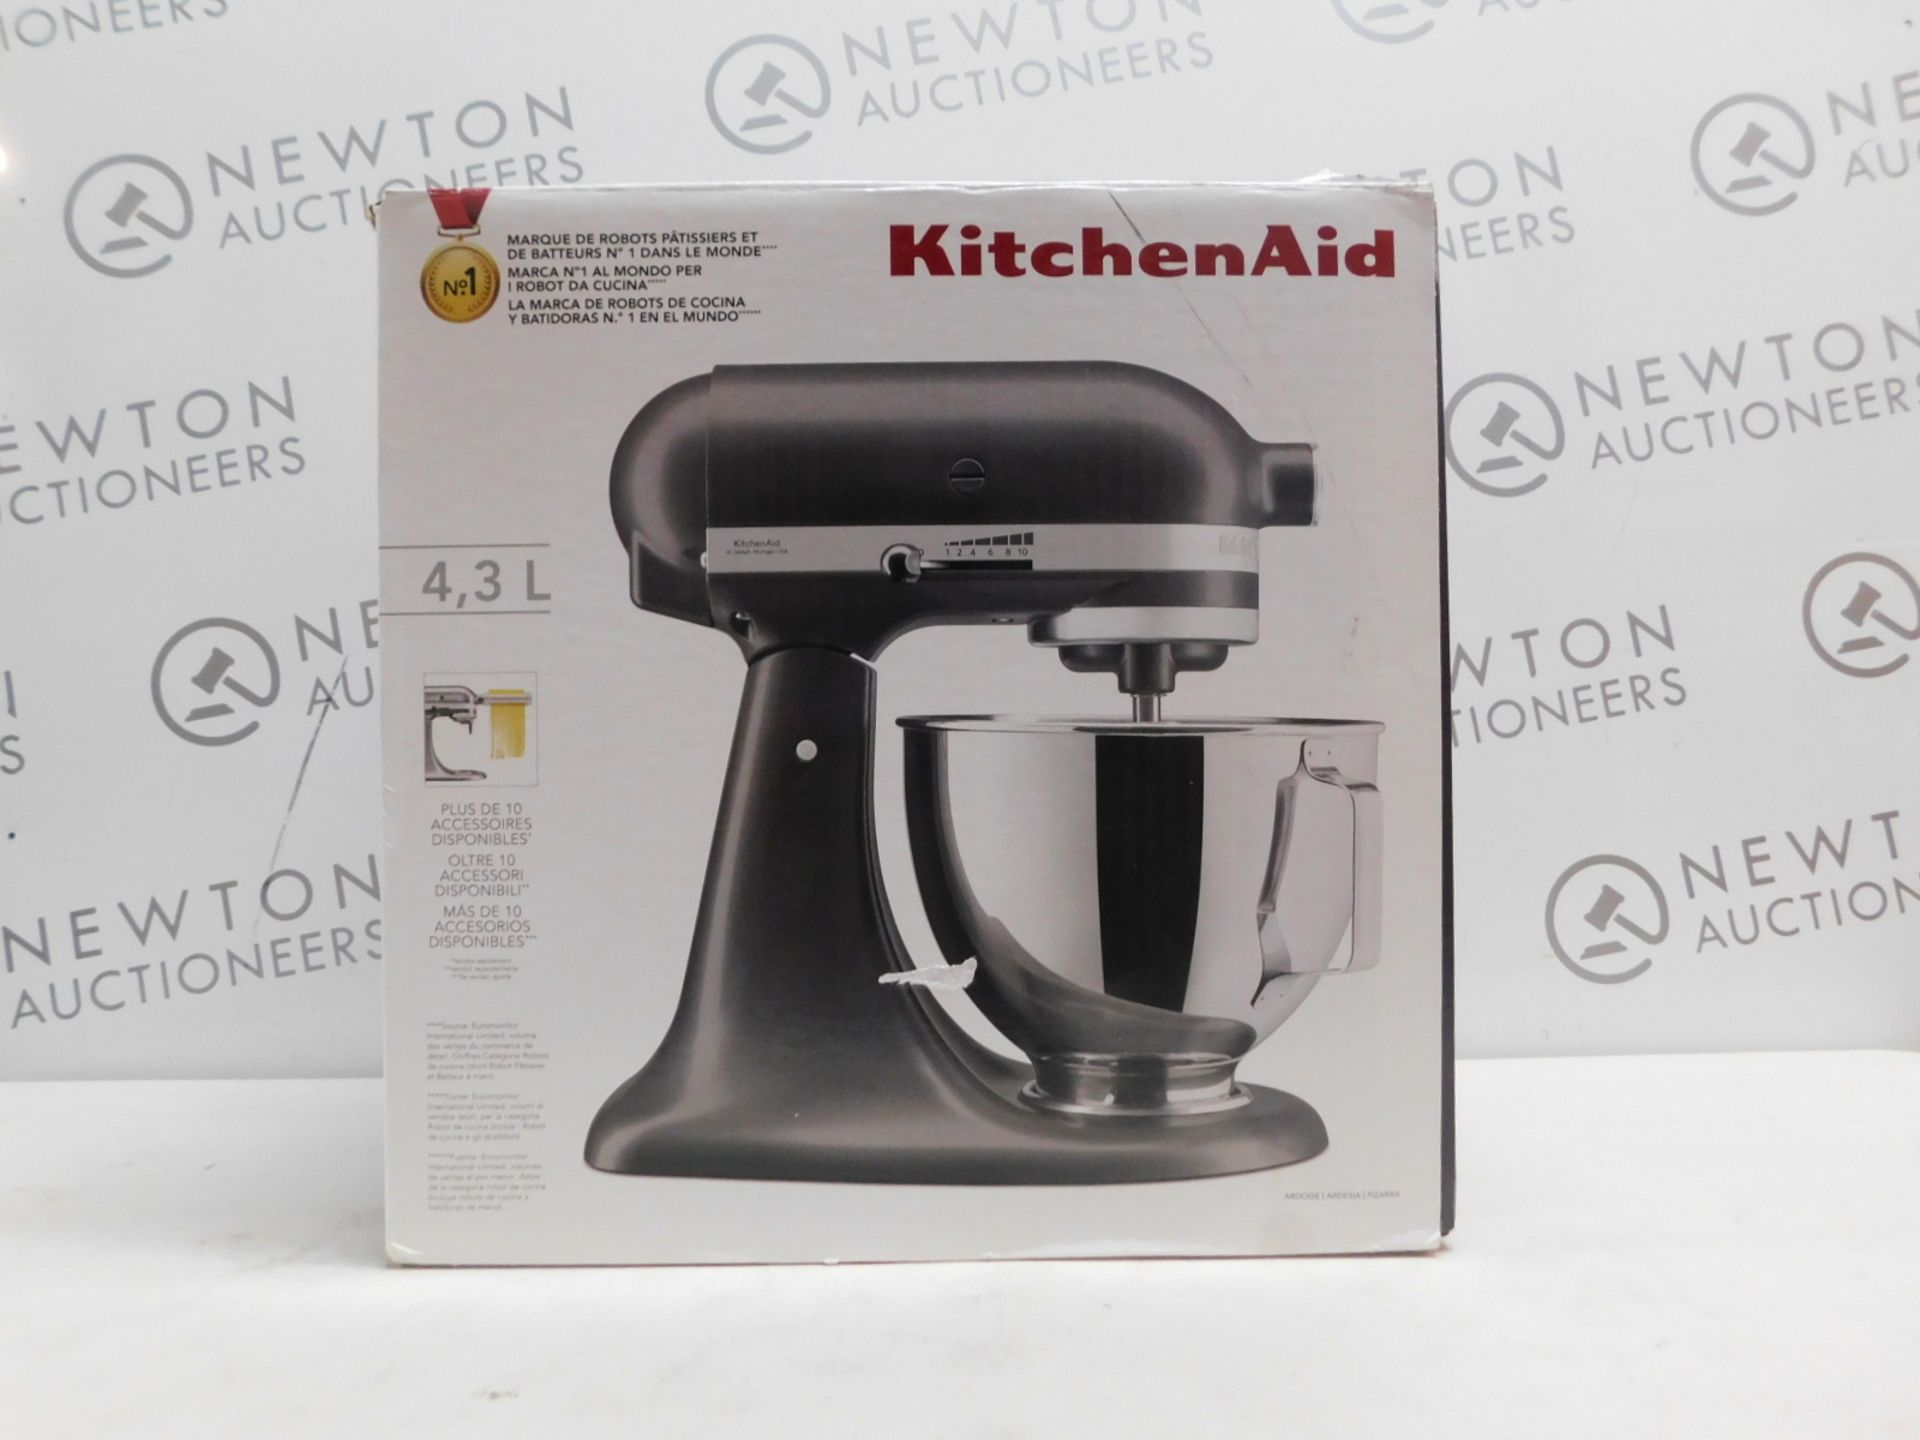 1 BOXED KITCHENAID 5KSM95 ELECTRIC MUTI-FUNCTION STAND MIXER WITH ACCESSORIES RRP £499 (WORKING, IN